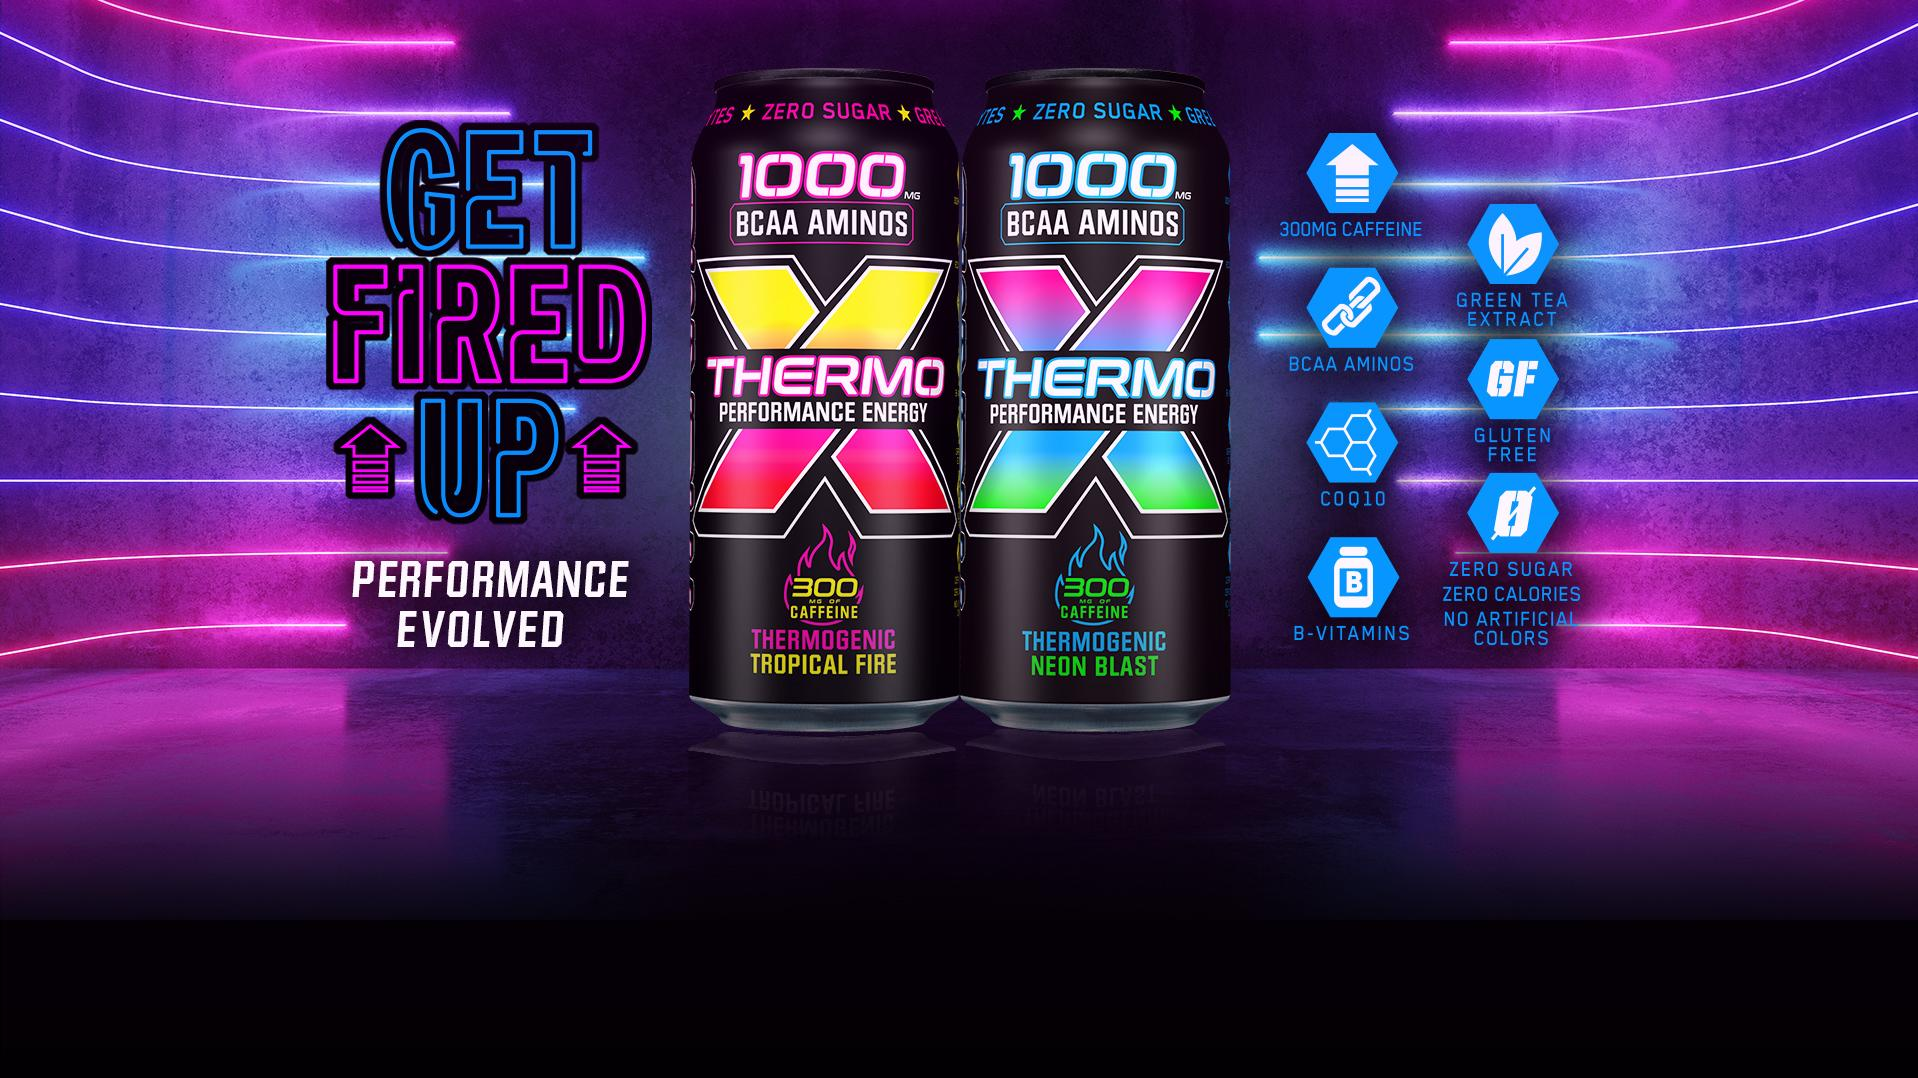 Rockstar Thermo - Performance Evolved